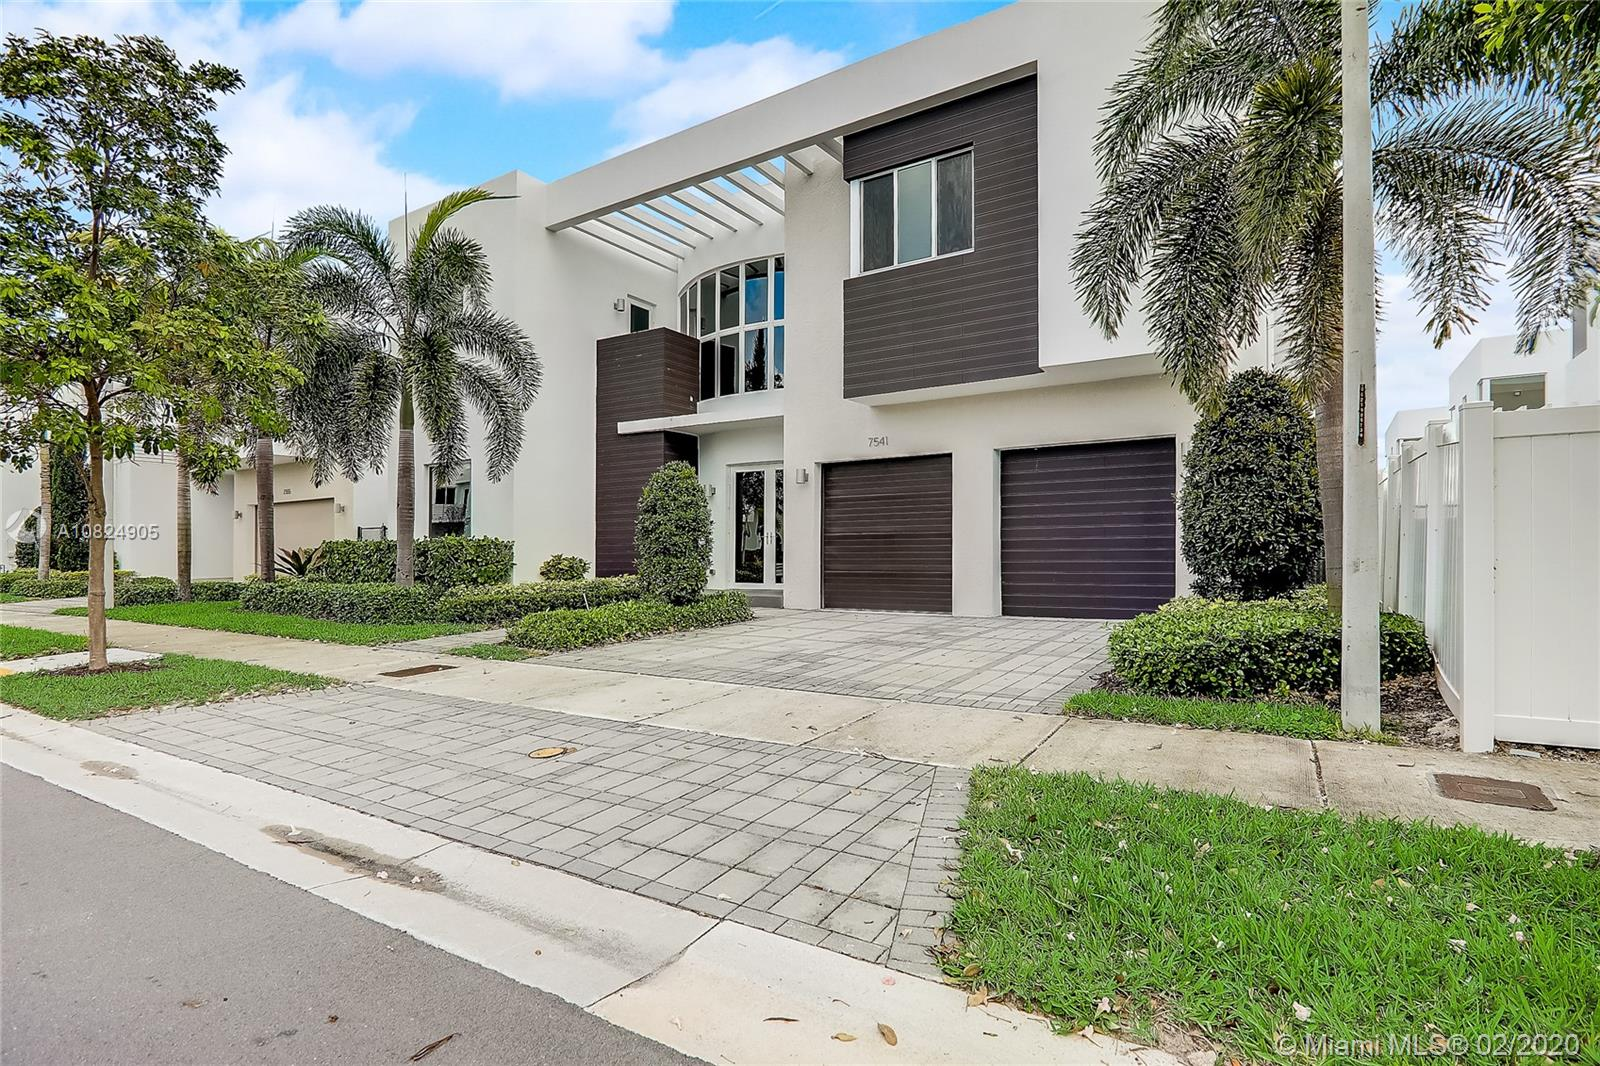 7541 NW 100th Ave - Doral, Florida